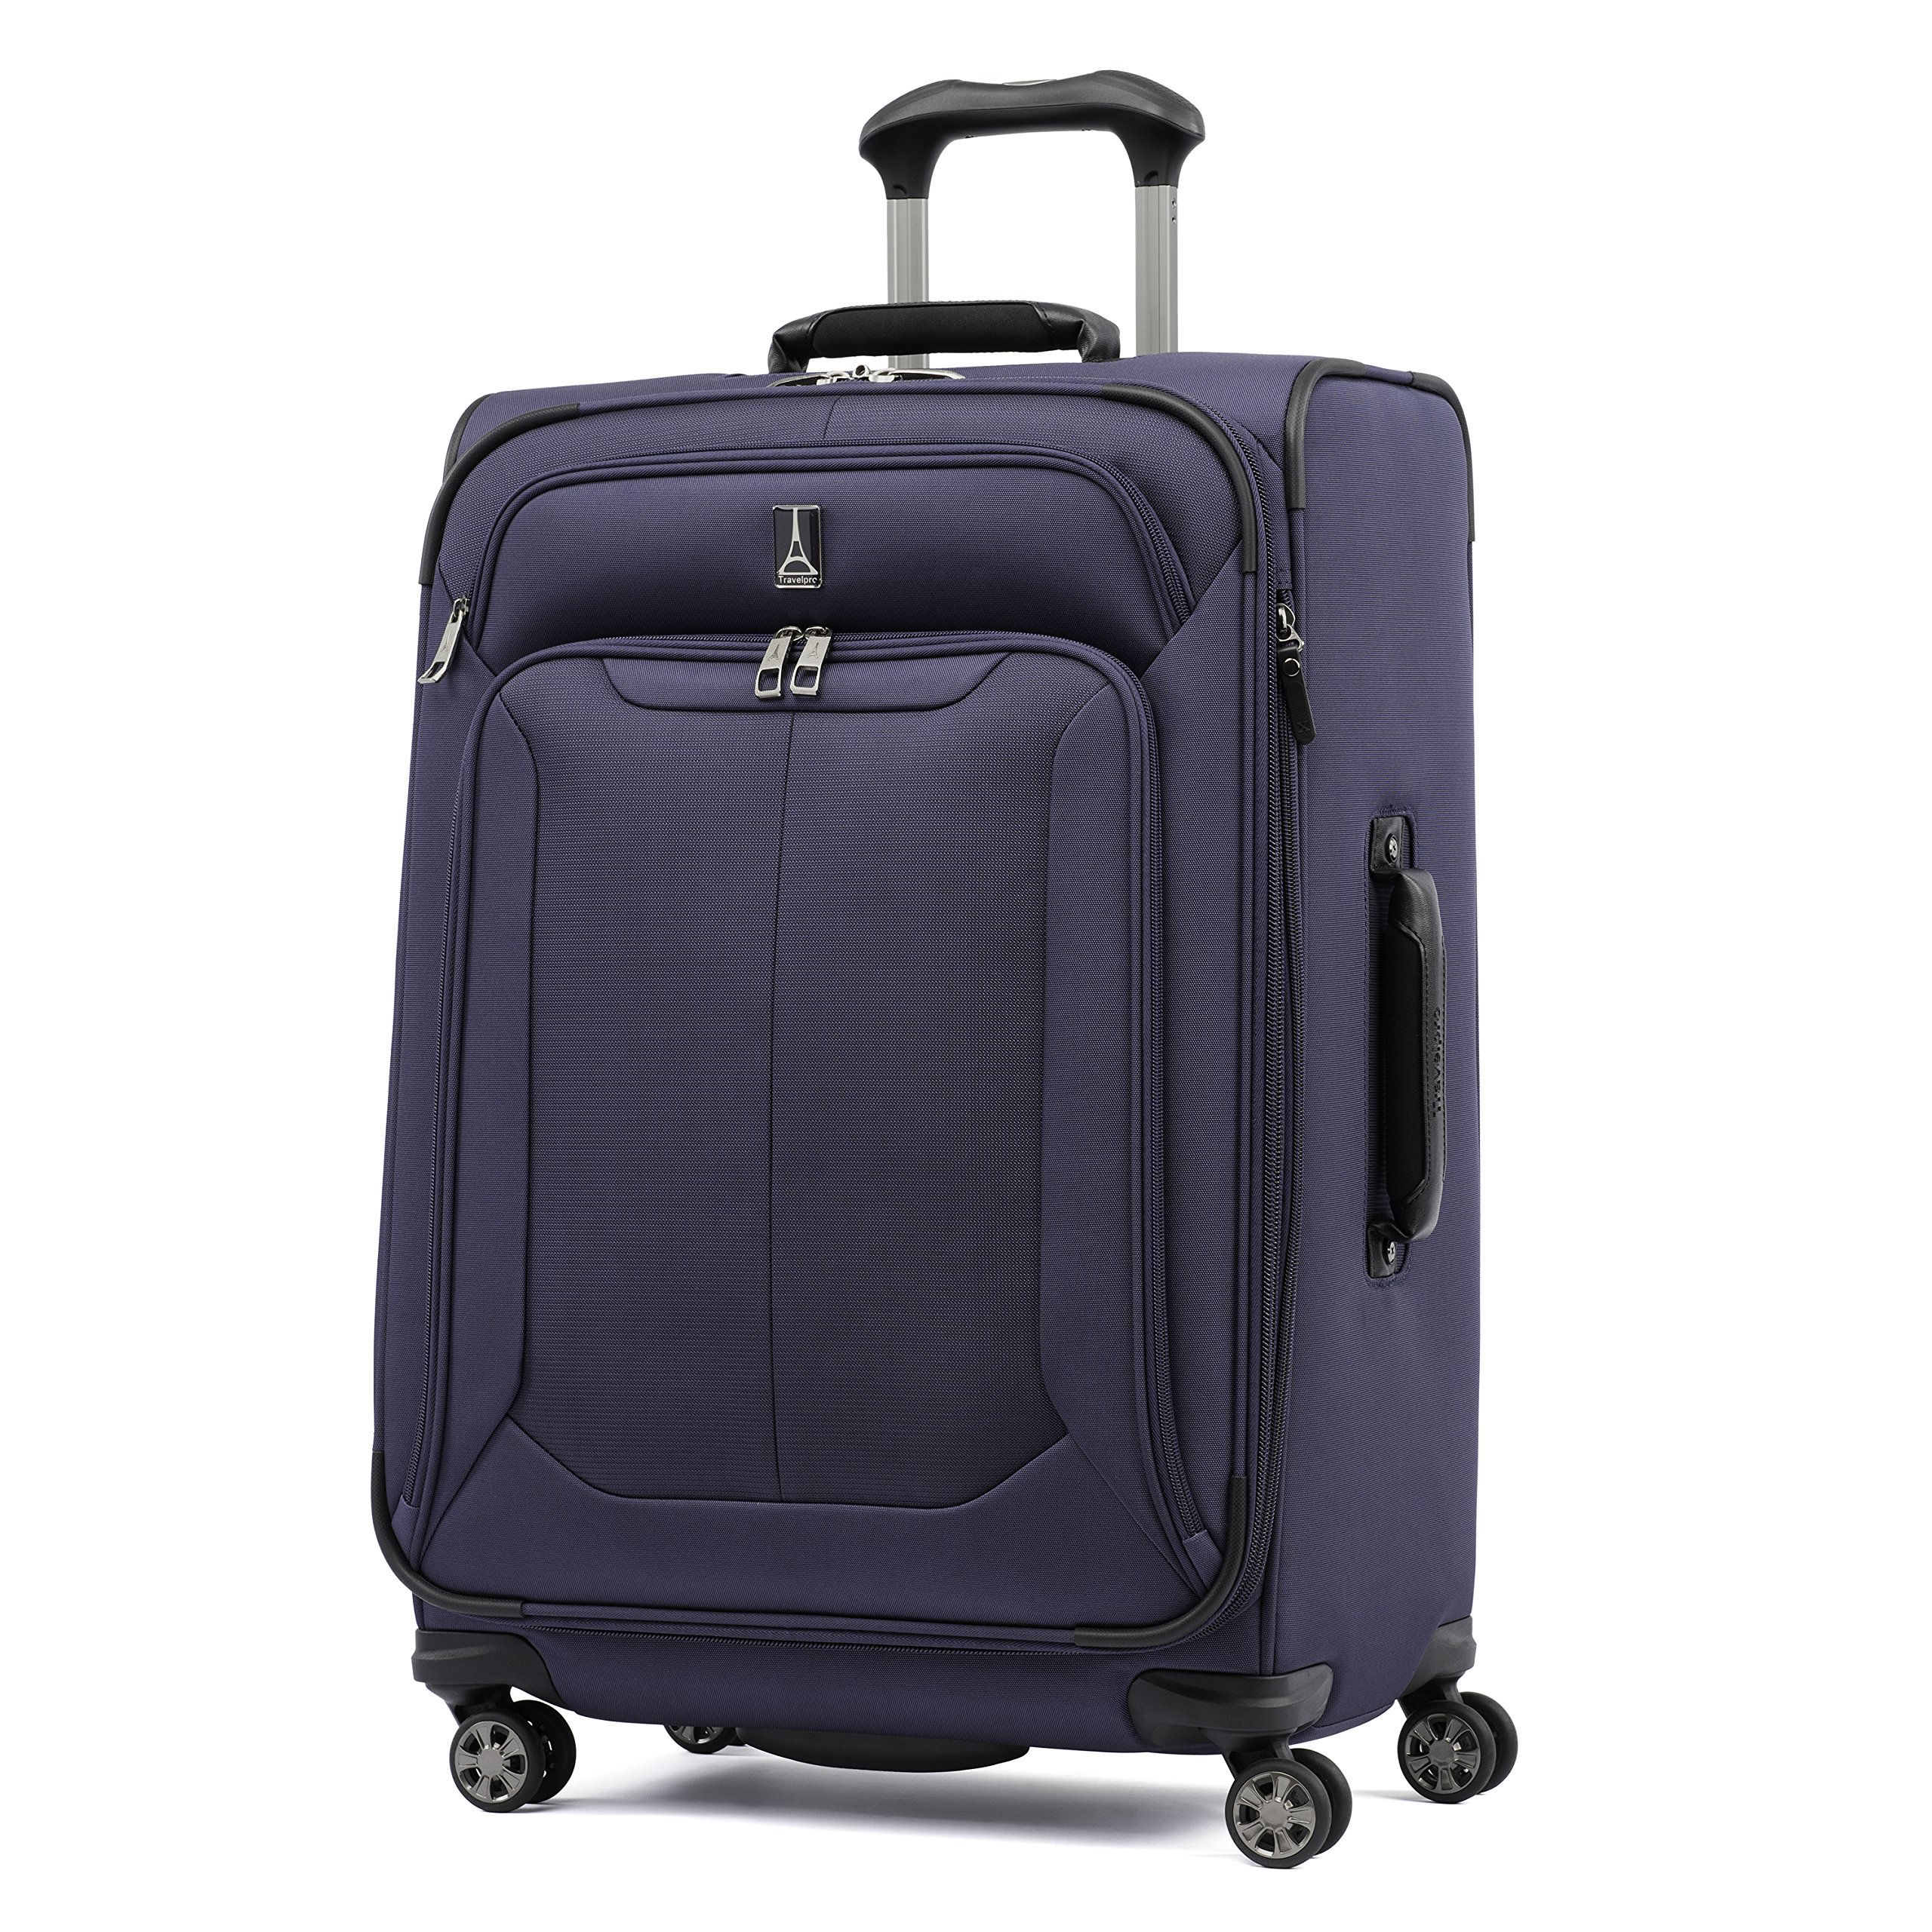 Travelpro Skypro Lite 25'' Expandable 8-Wheel Luggage Spinner (Navy)